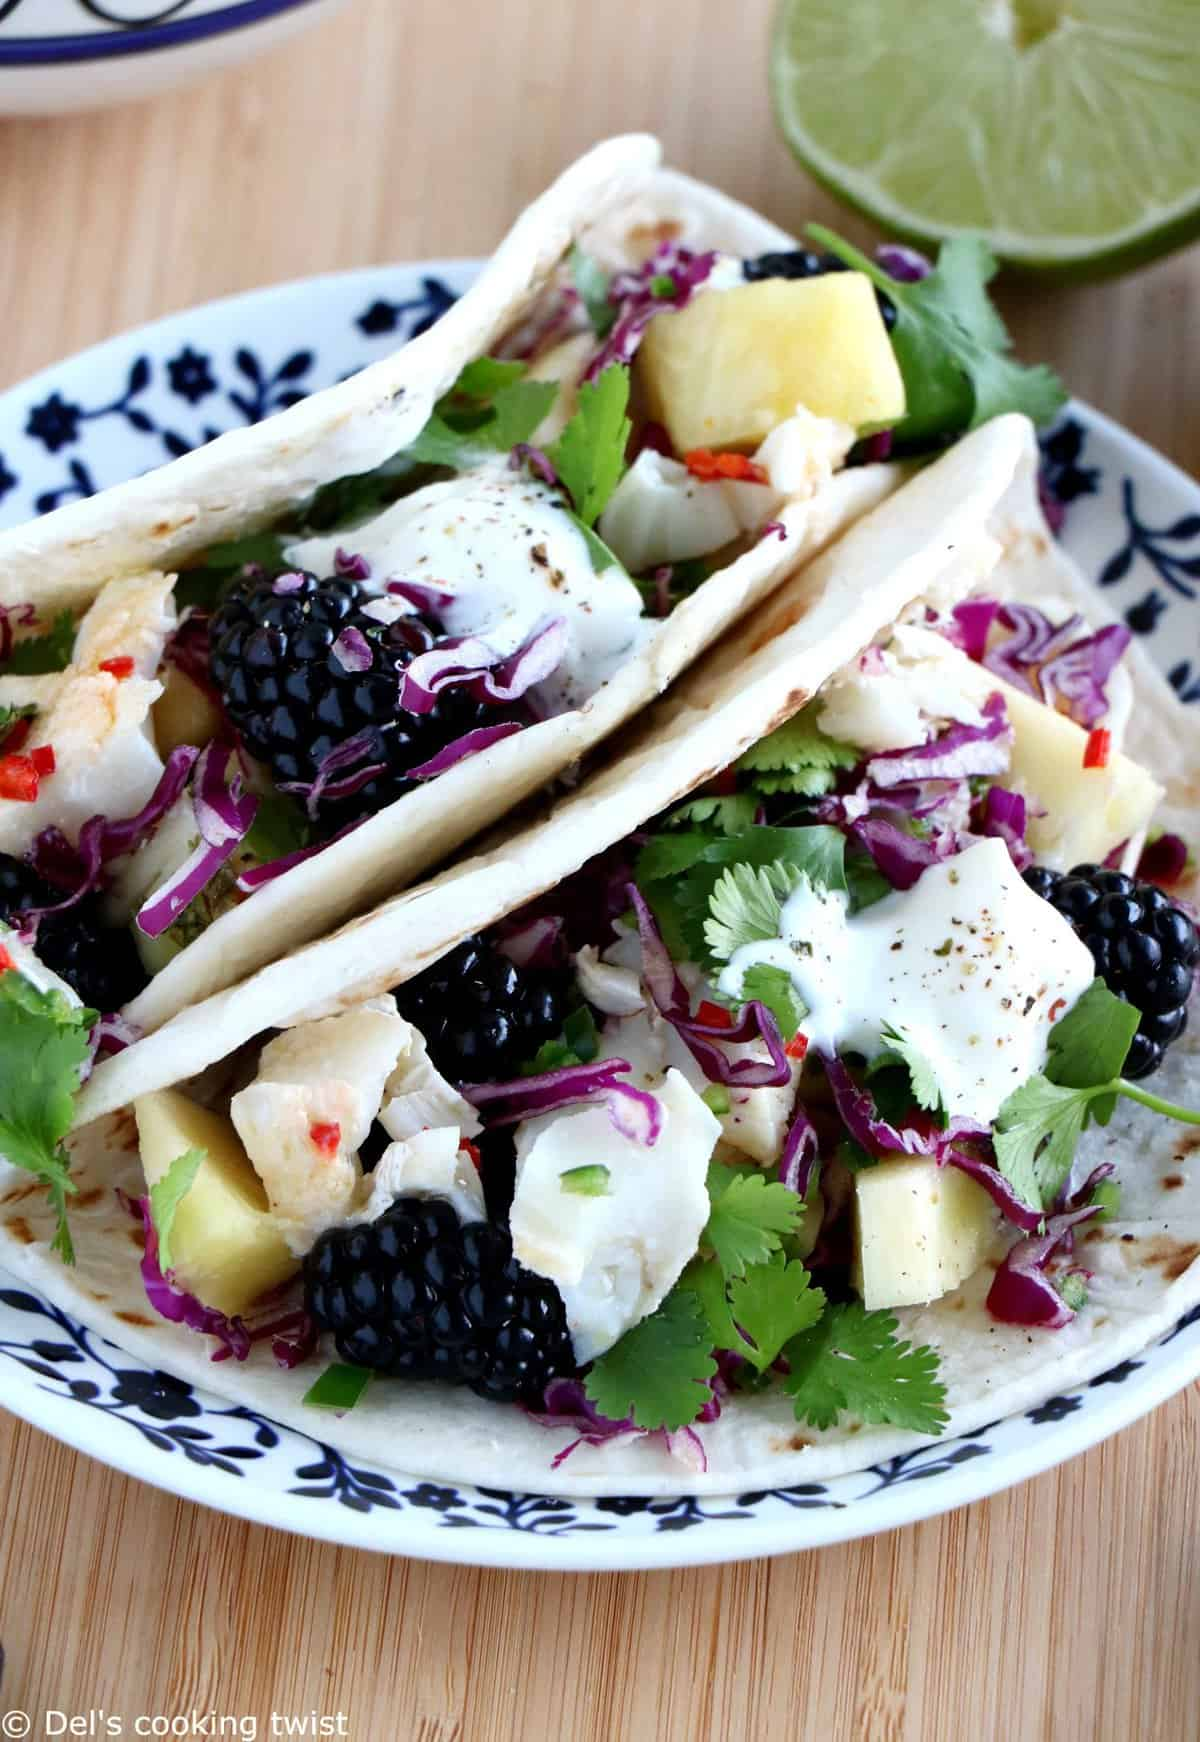 Fish tacos with a chili lime fruit salsa del 39 s cooking twist for Fruit salsa for fish